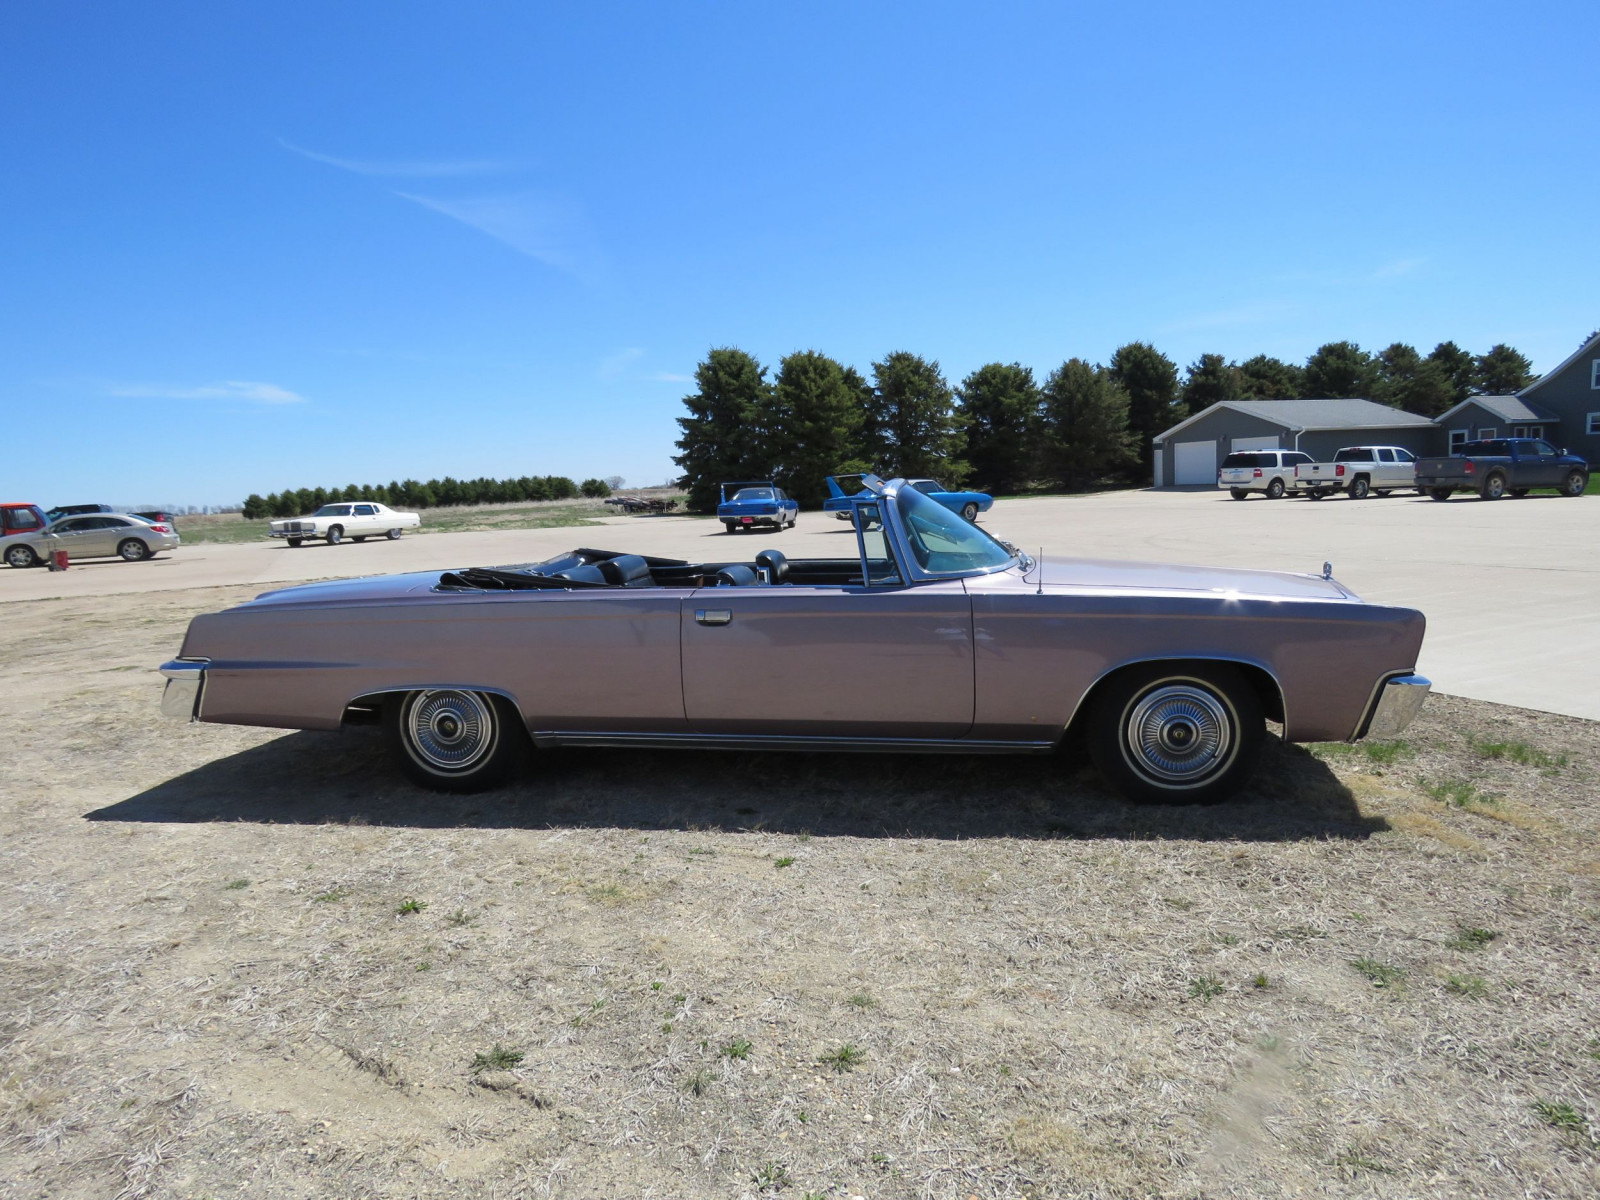 1966 Chrysler Imperial Crown Convertible - Image 4